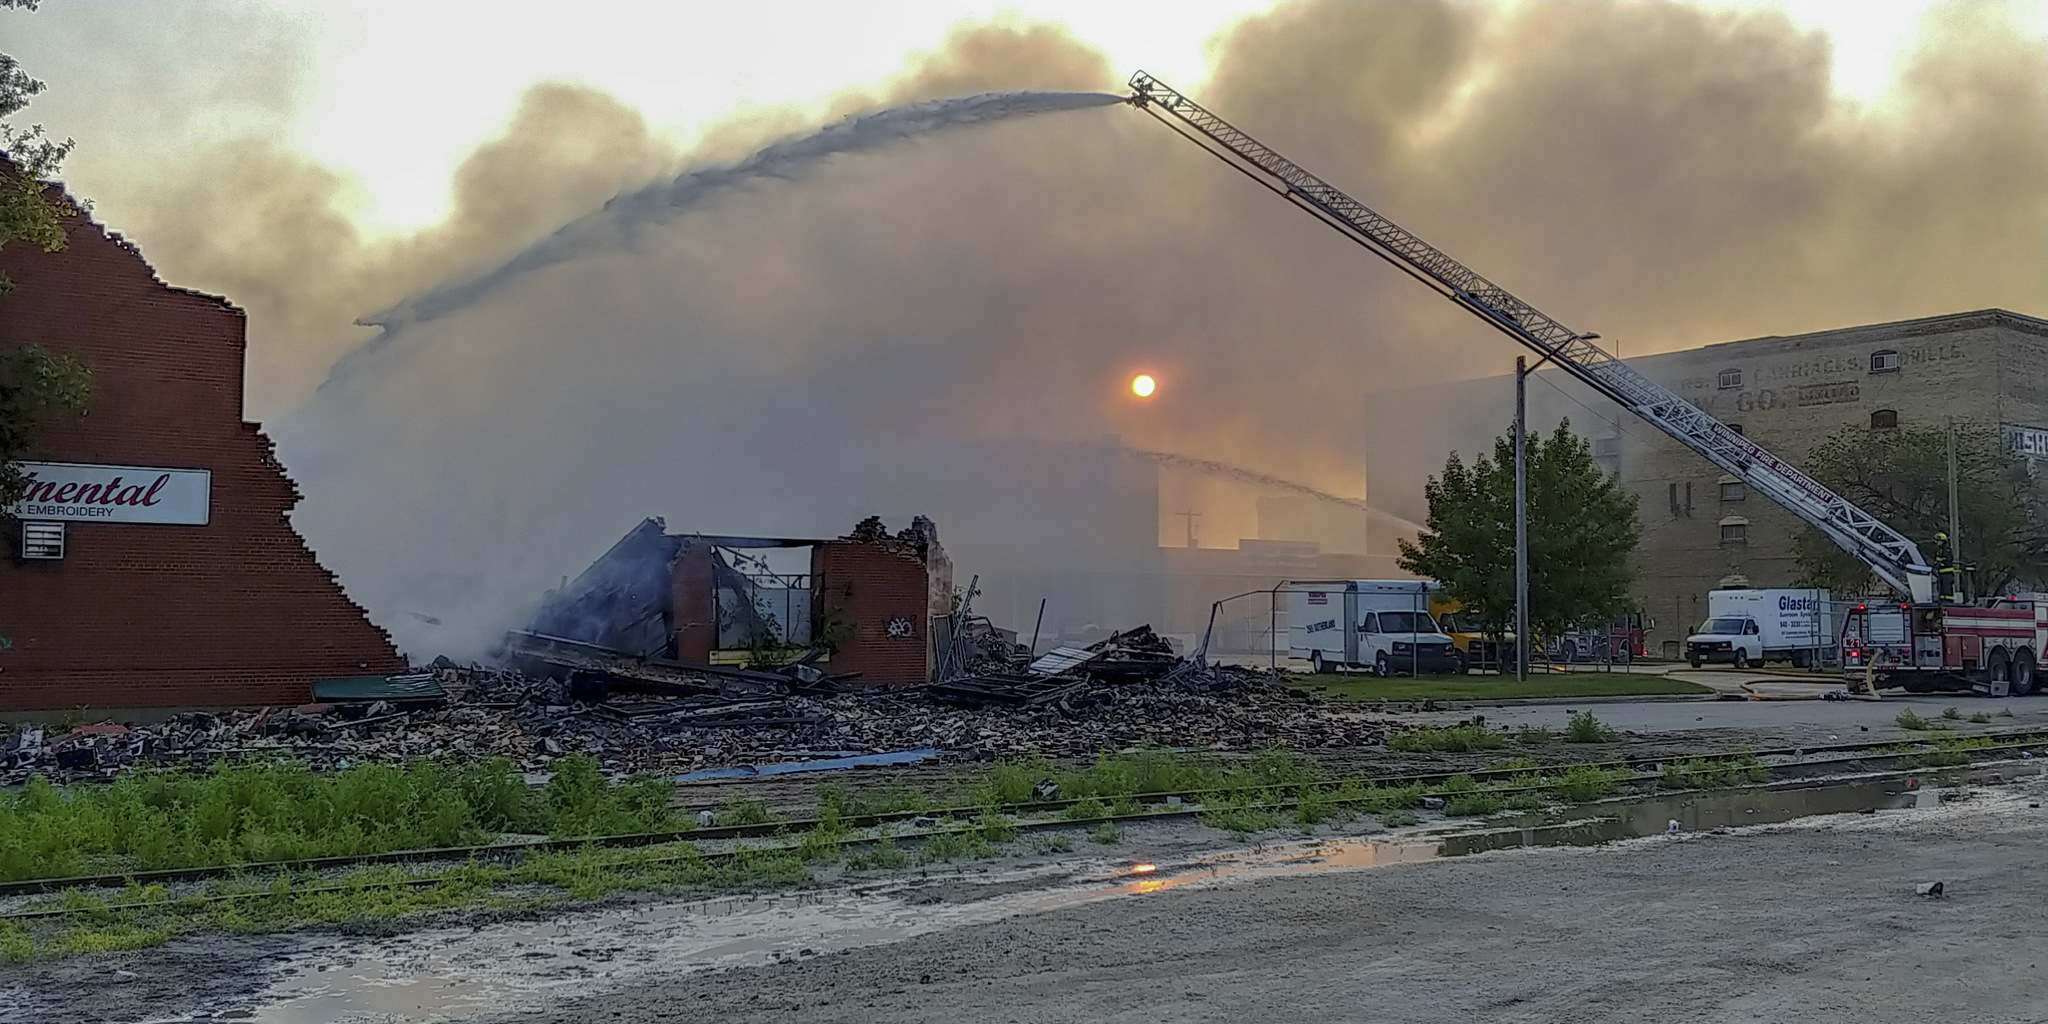 NICHOLAS FREW / WINNIPEG FREE PRESS</p><p>Firefighters battle a warehouse fire on Jarvis Avenue on Monday morning. There were around 30 different artists and musicians with studios in the 2½-storey warehouse. No injuries were reported, but some lost their life's work.</p>